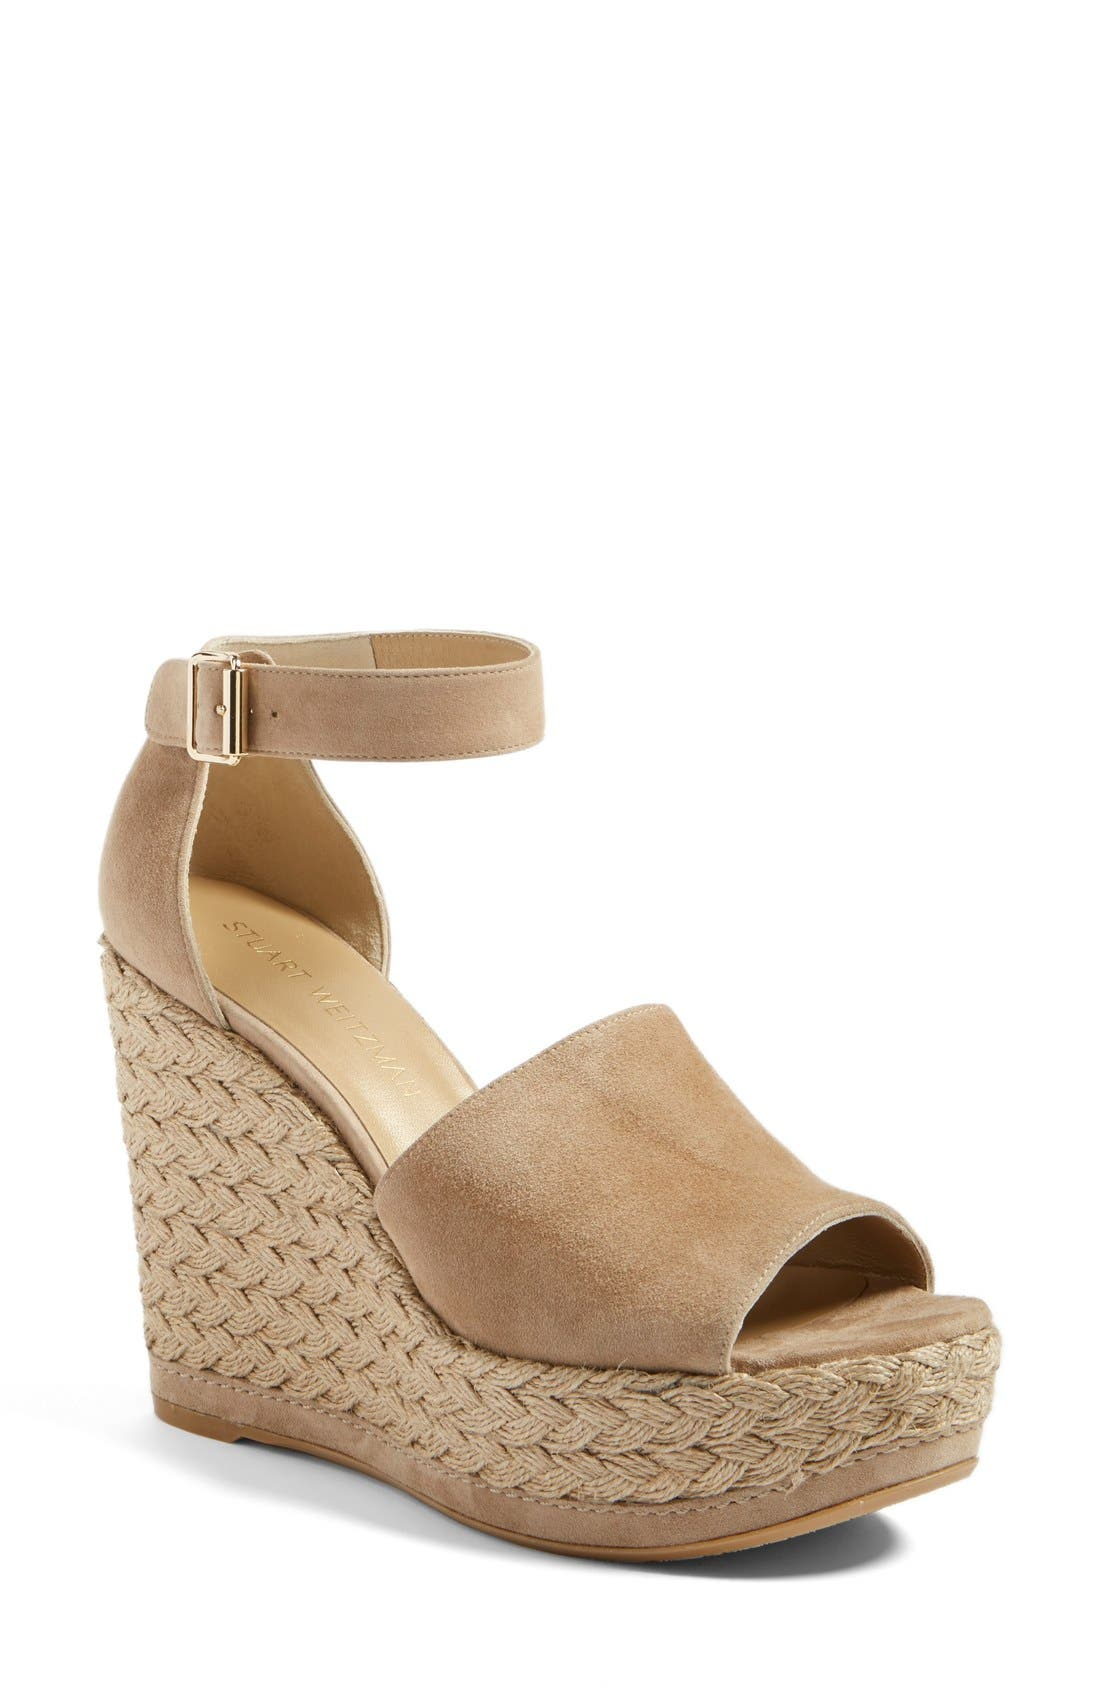 Sohojute Platform Wedge Sandal,                             Main thumbnail 1, color,                             Mojave Suede